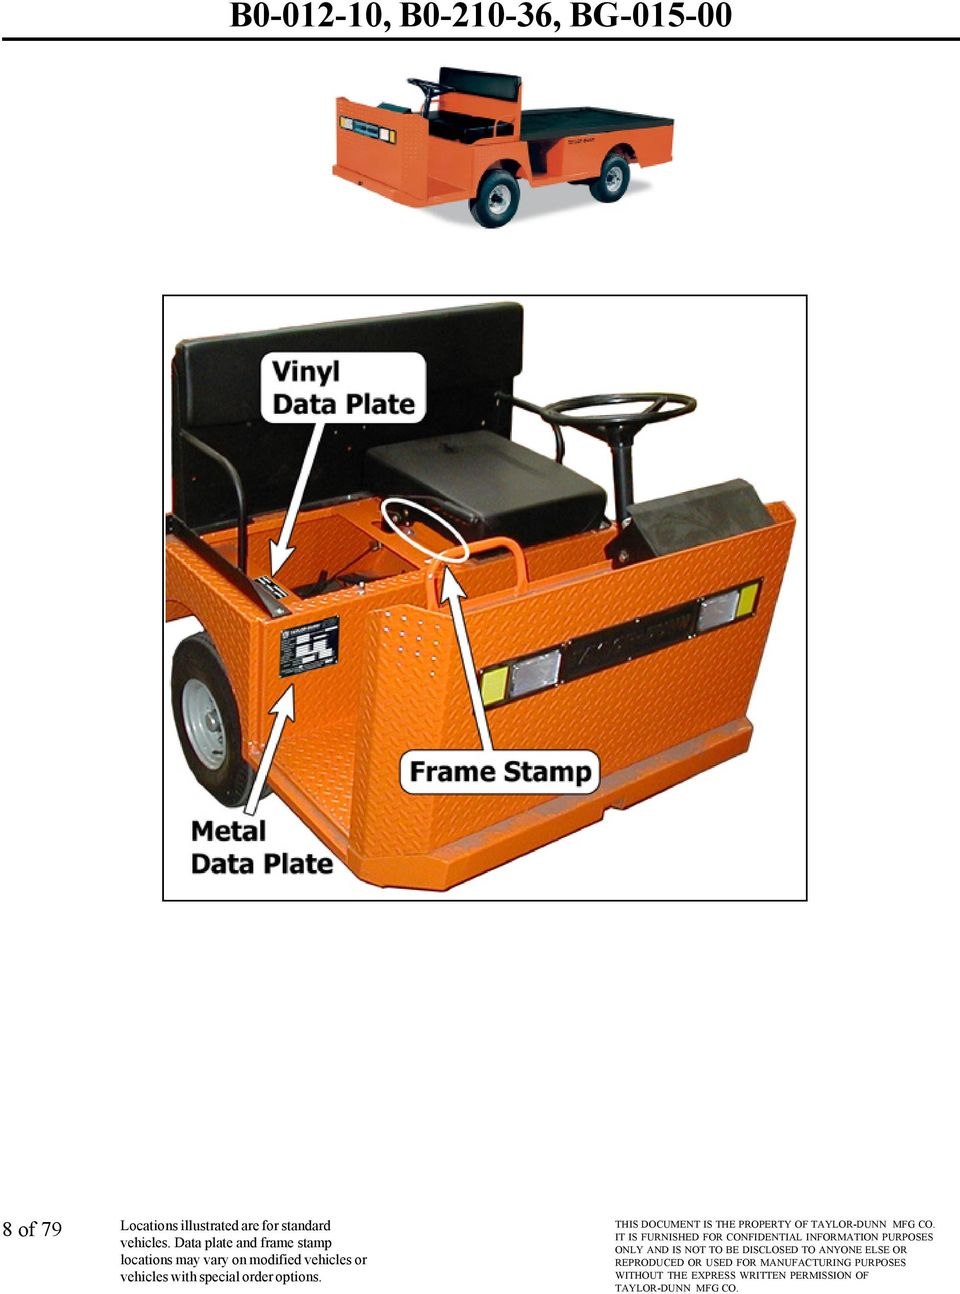 VEHICLE IDENTIFICATION SERIAL NUMBER FRAME STAMP AND